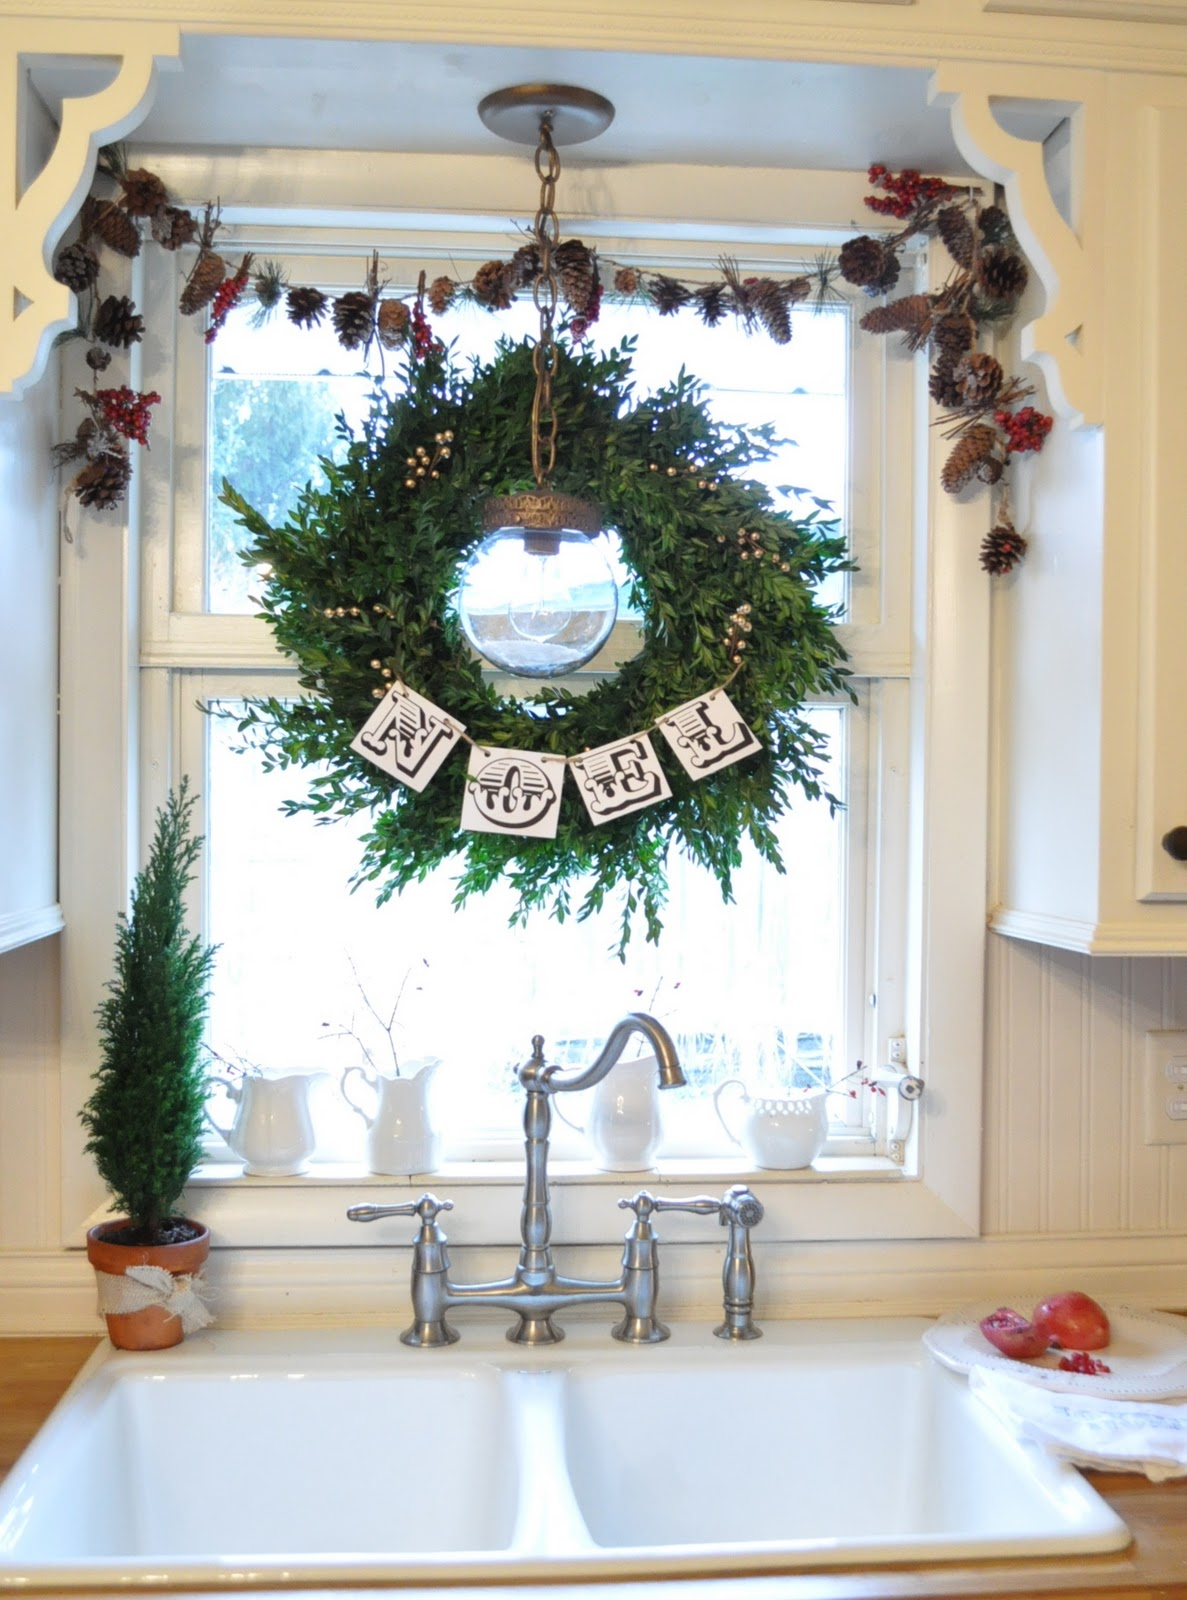 Indoor window christmas decorations - 41 Beautiful Decor Ideas For Your Kitchen